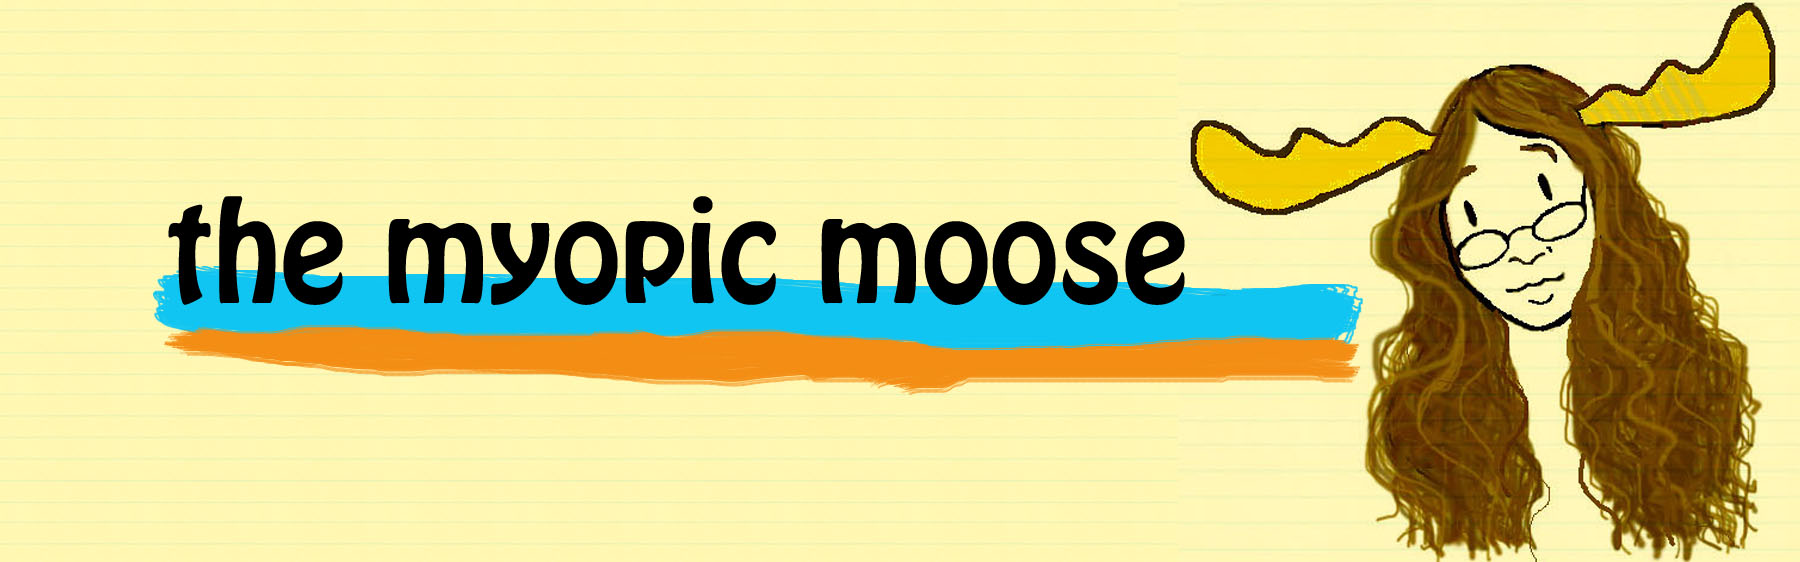 The Myopic Moose